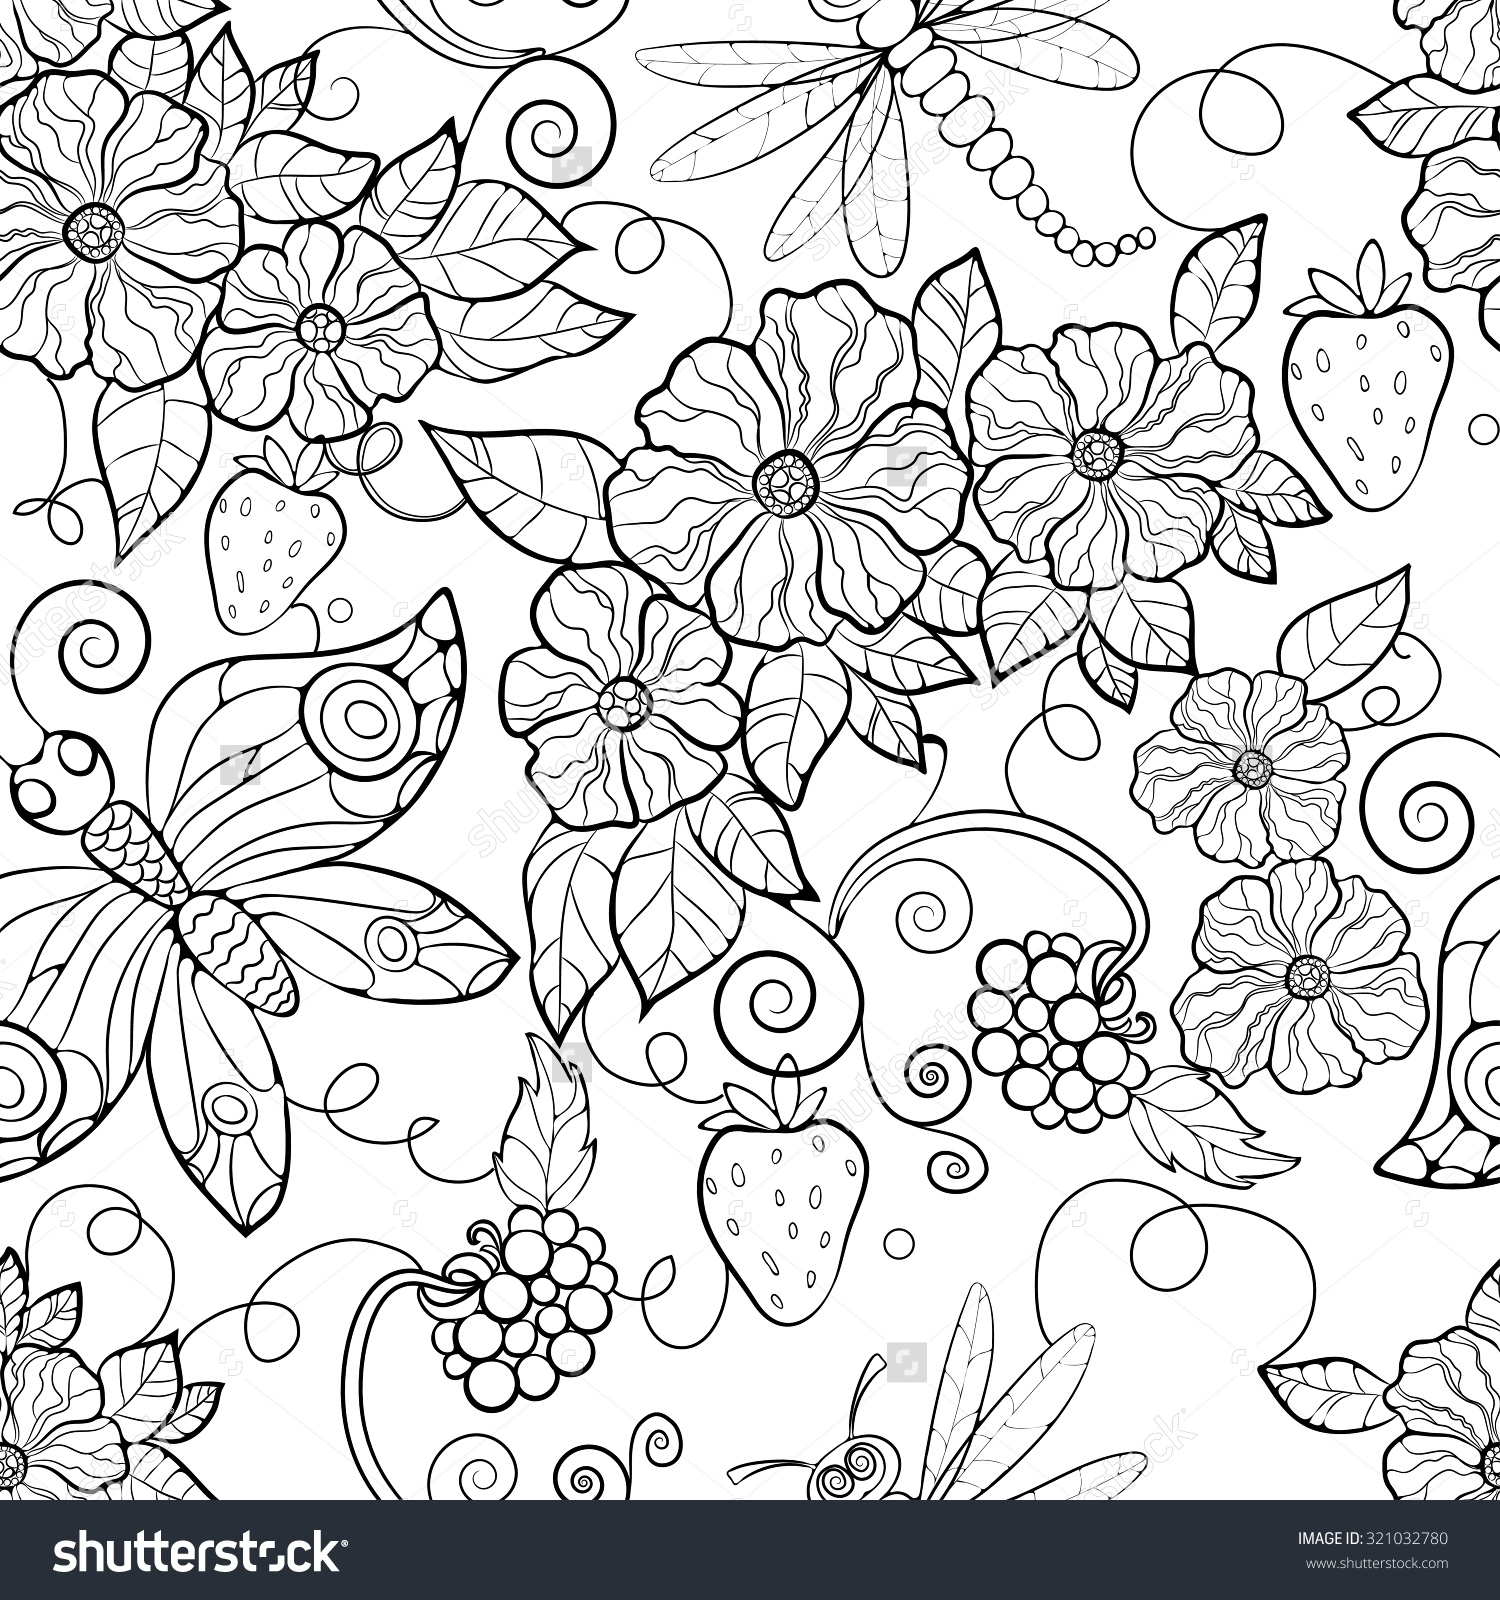 1500x1600 Rose Butterfly Adult Coloring Pages Download